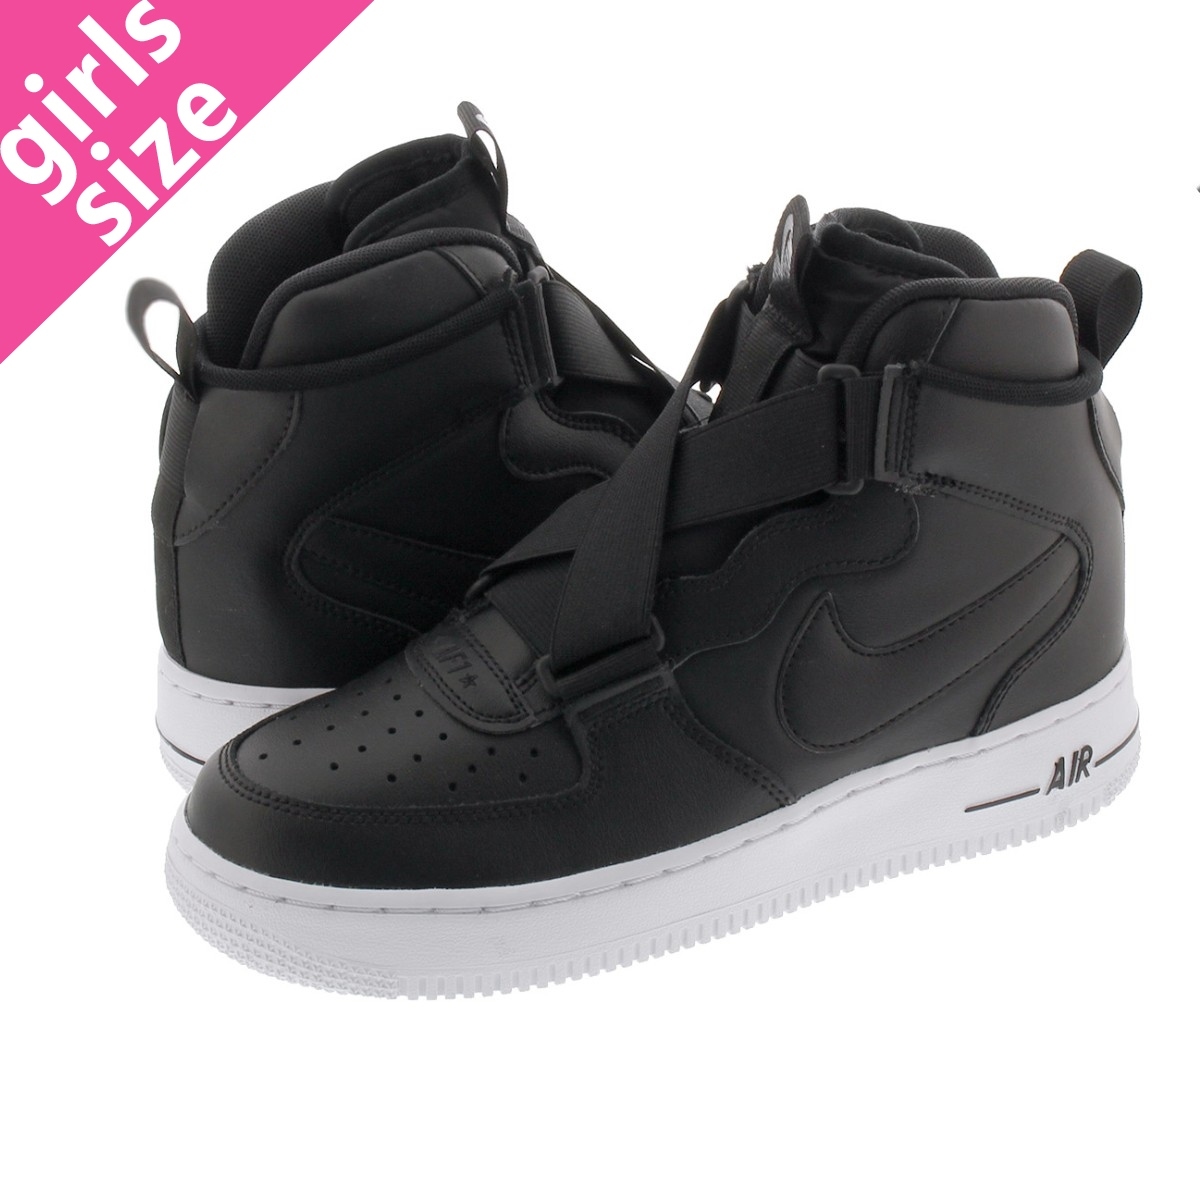 NIKE AIR FORCE 1 HIGHNESS GS ナイキ エア フォース 1 ハイネス GS BLACK/BLACK/WHITE bq3598-001